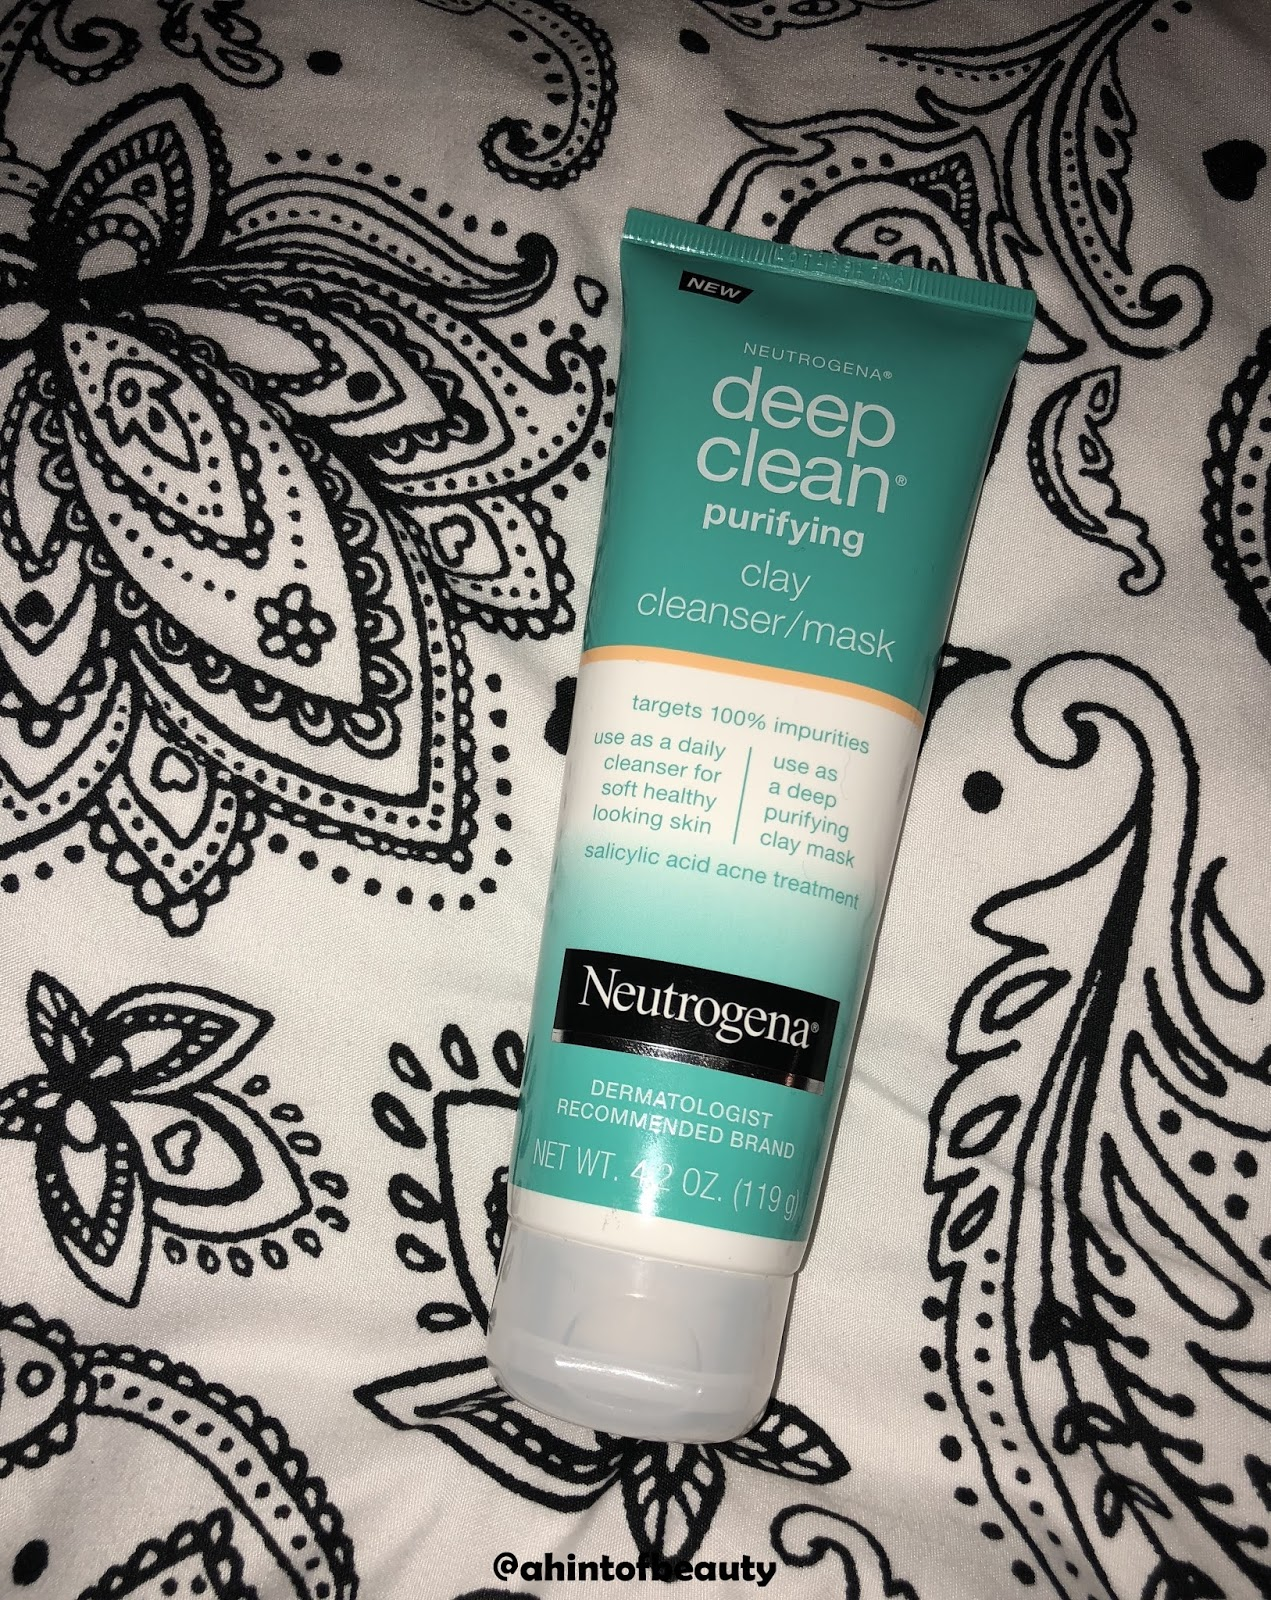 Deep Clean Purifying Clay Mask & Cleanser by Neutrogena #7